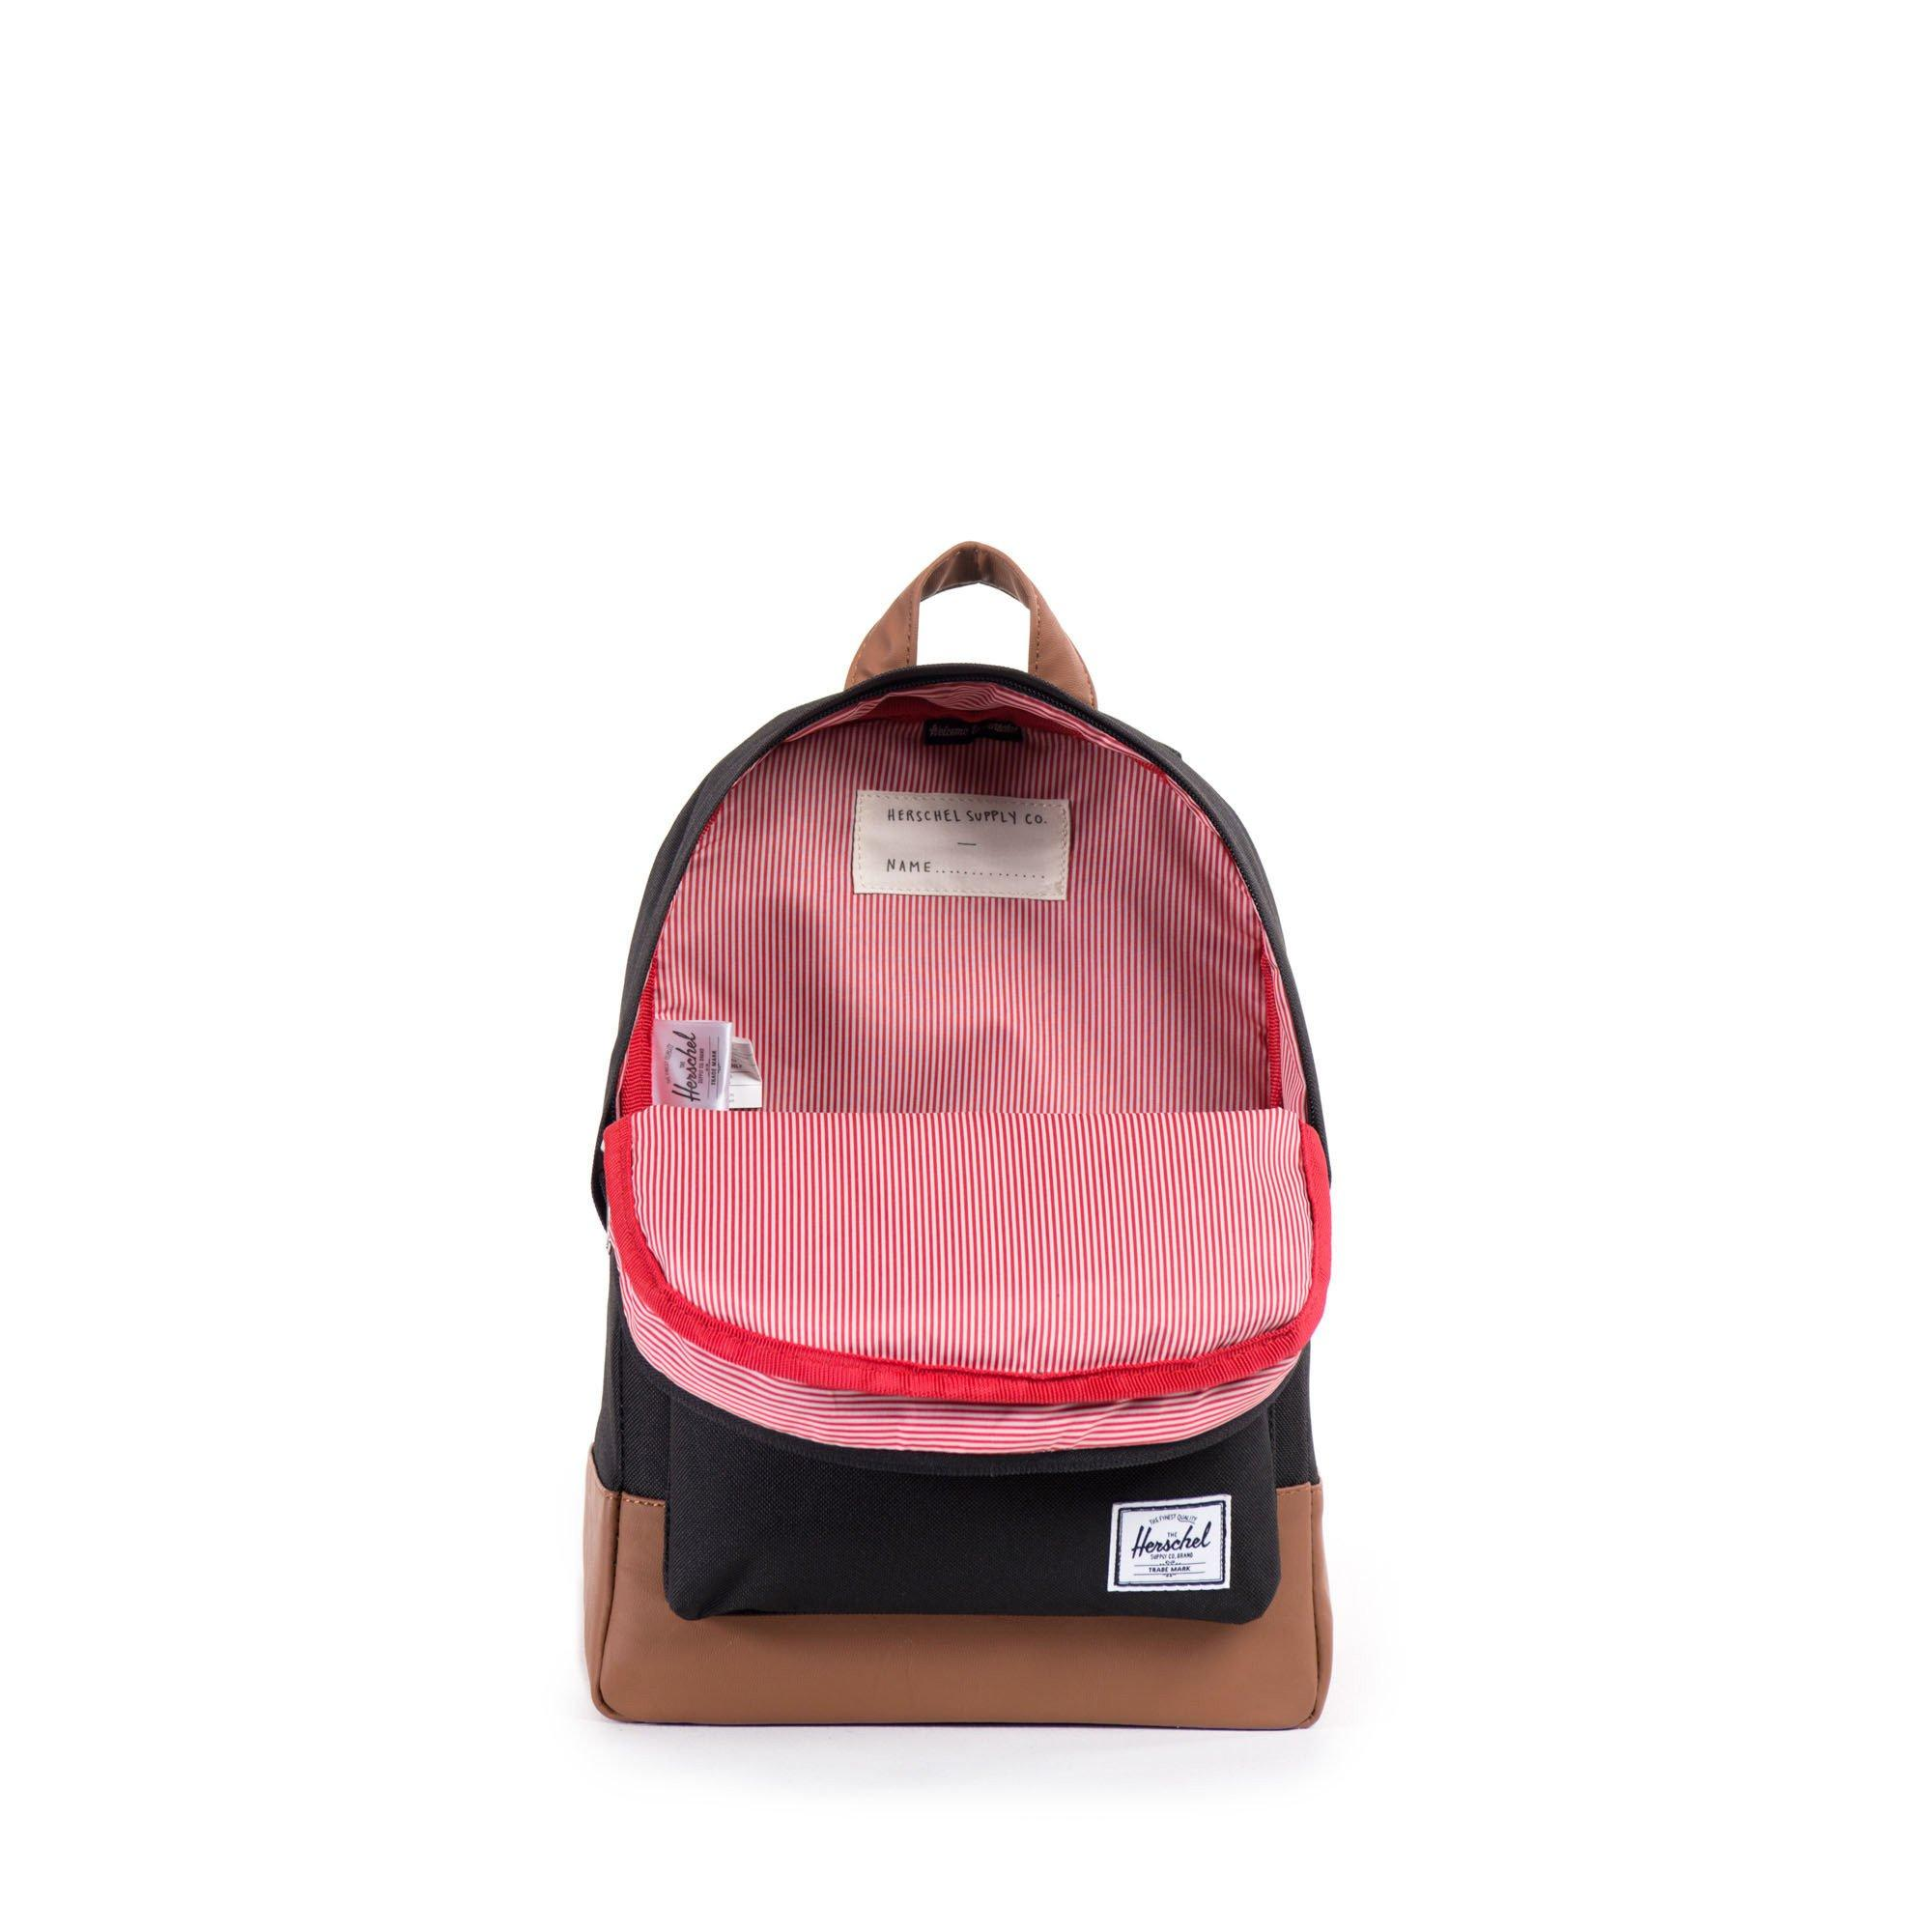 6071740cd5c2 ... Herschel Supply Co. Heritage Kids Backpack - Jet-Setter.ca ...